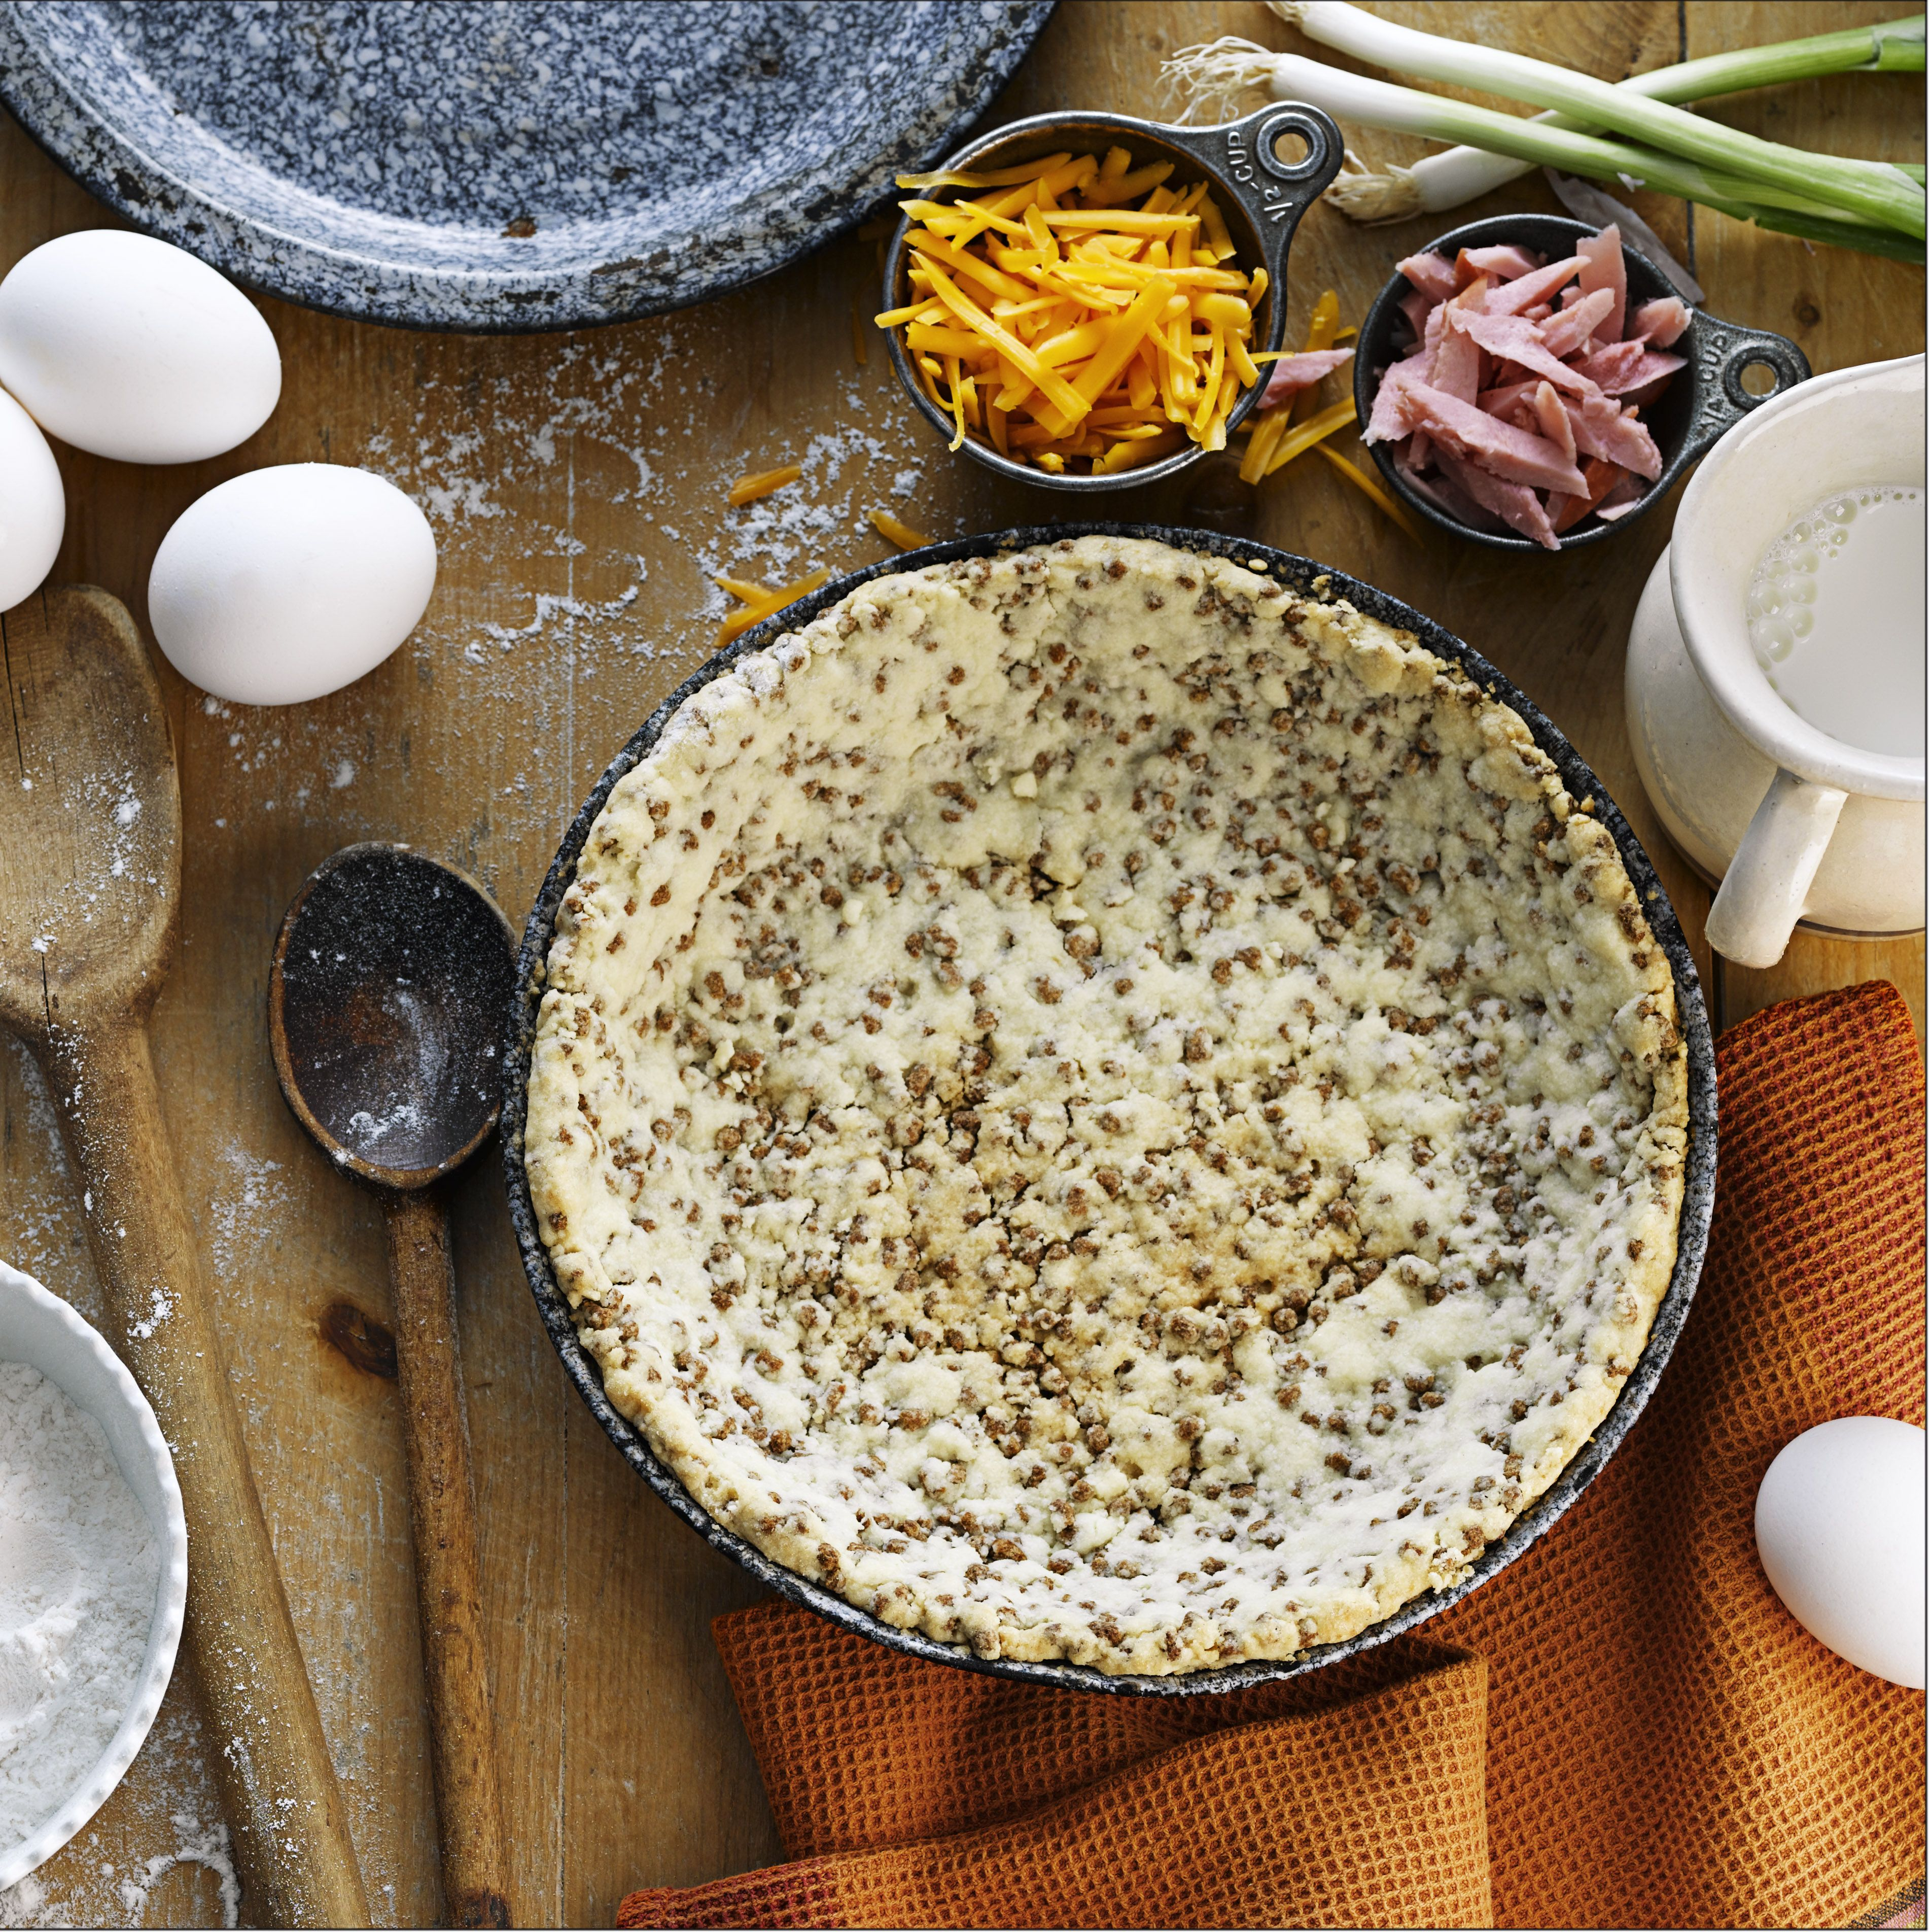 All-Bran™ Easy Pie Crust Recipe - Put away the rolling pin, this crust can simply be pressed into a pan using the back of a spoon. #AllBran #Recipe #Pie #Crust #ComfortFood #Fibre #Baking